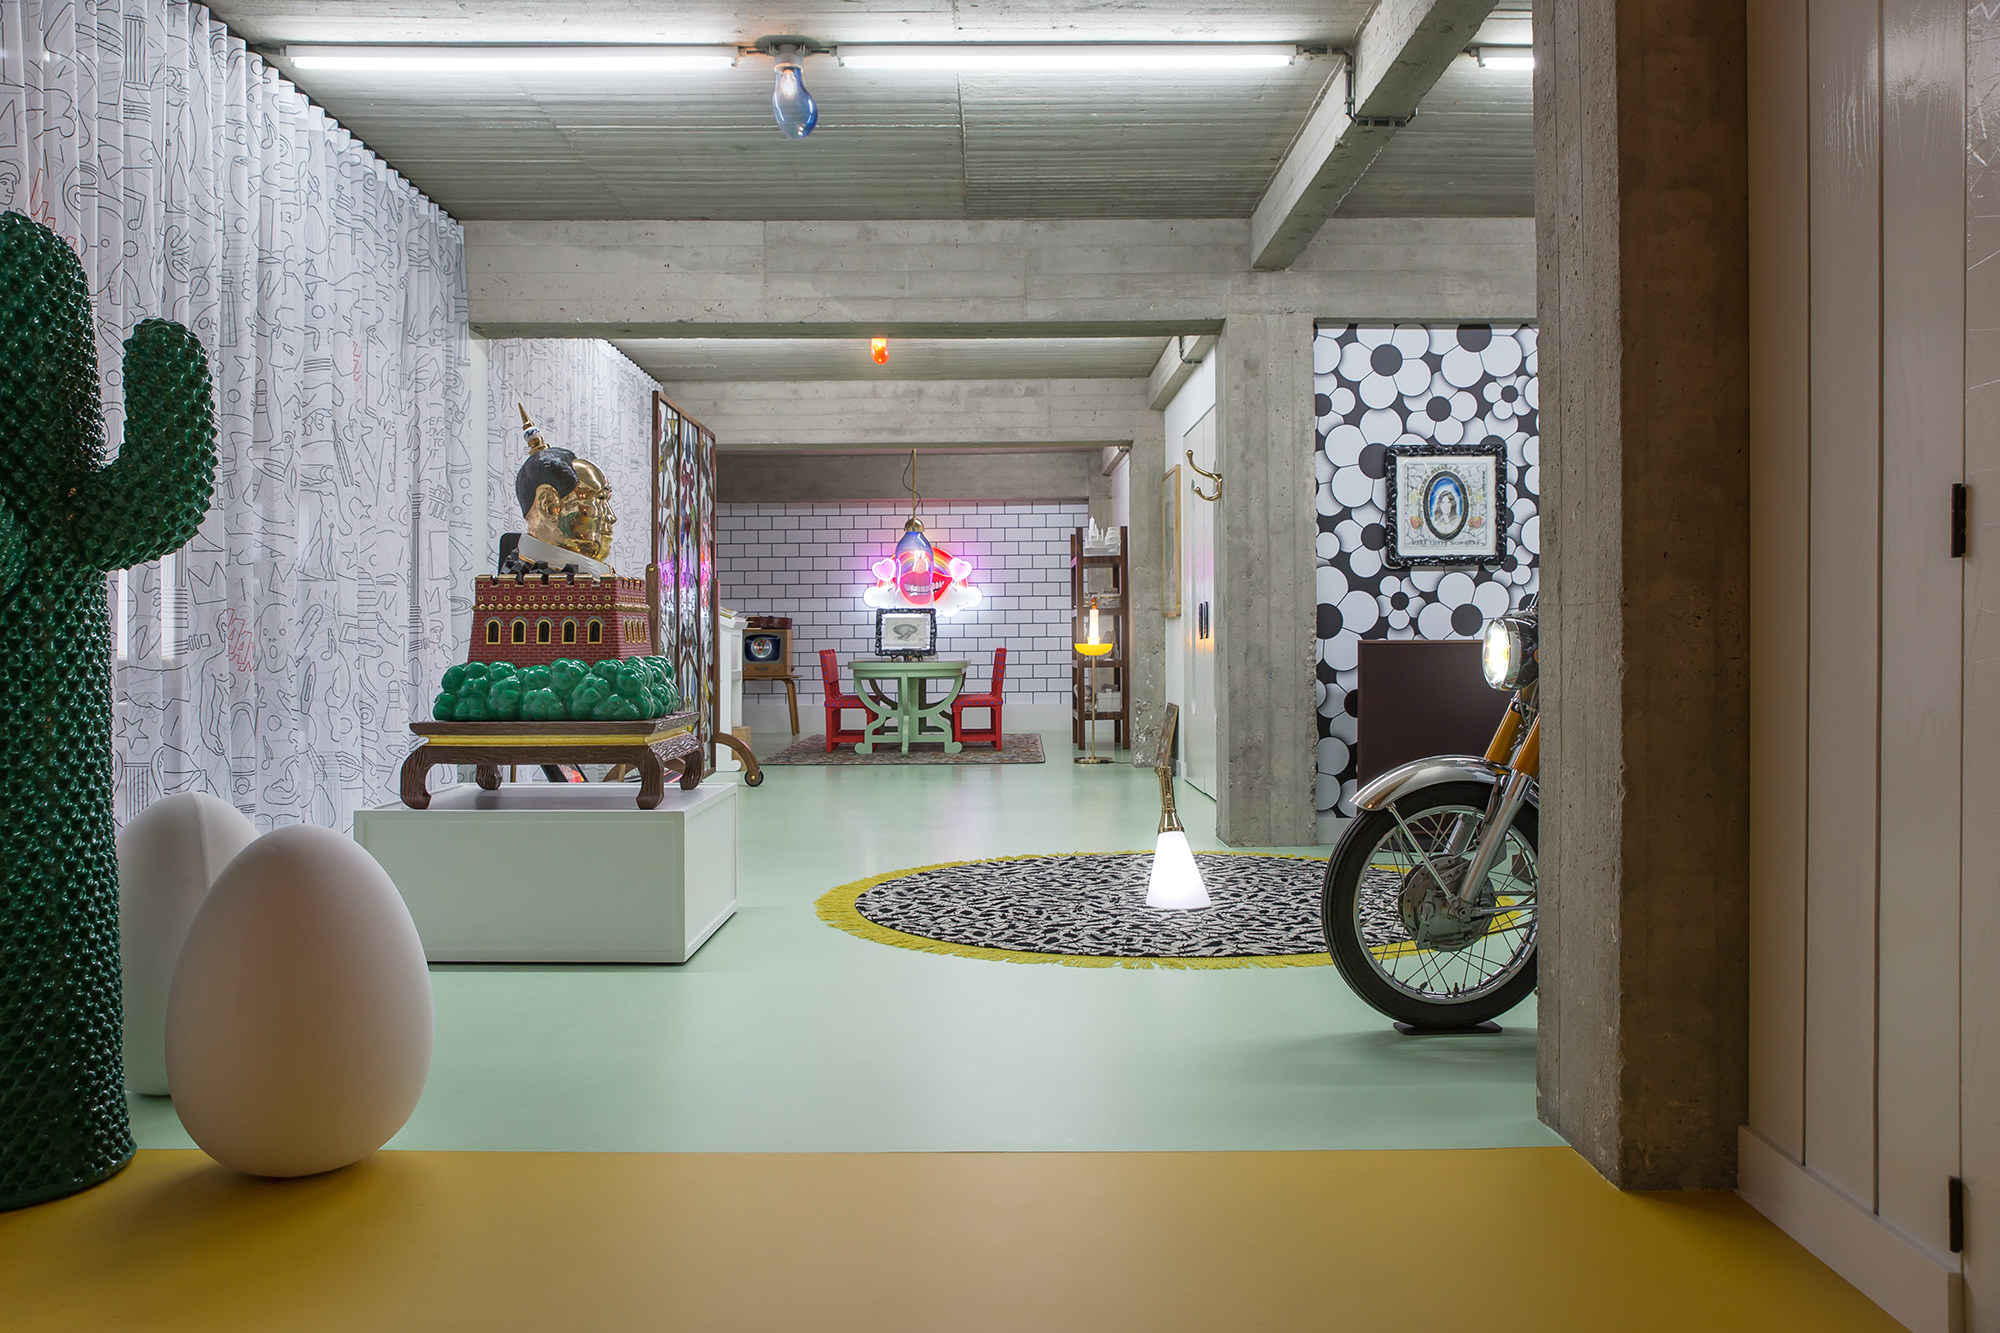 Studio-Job-redesigns-Antwerp-HQ-and-home-with-maximal-impact-Hallway3